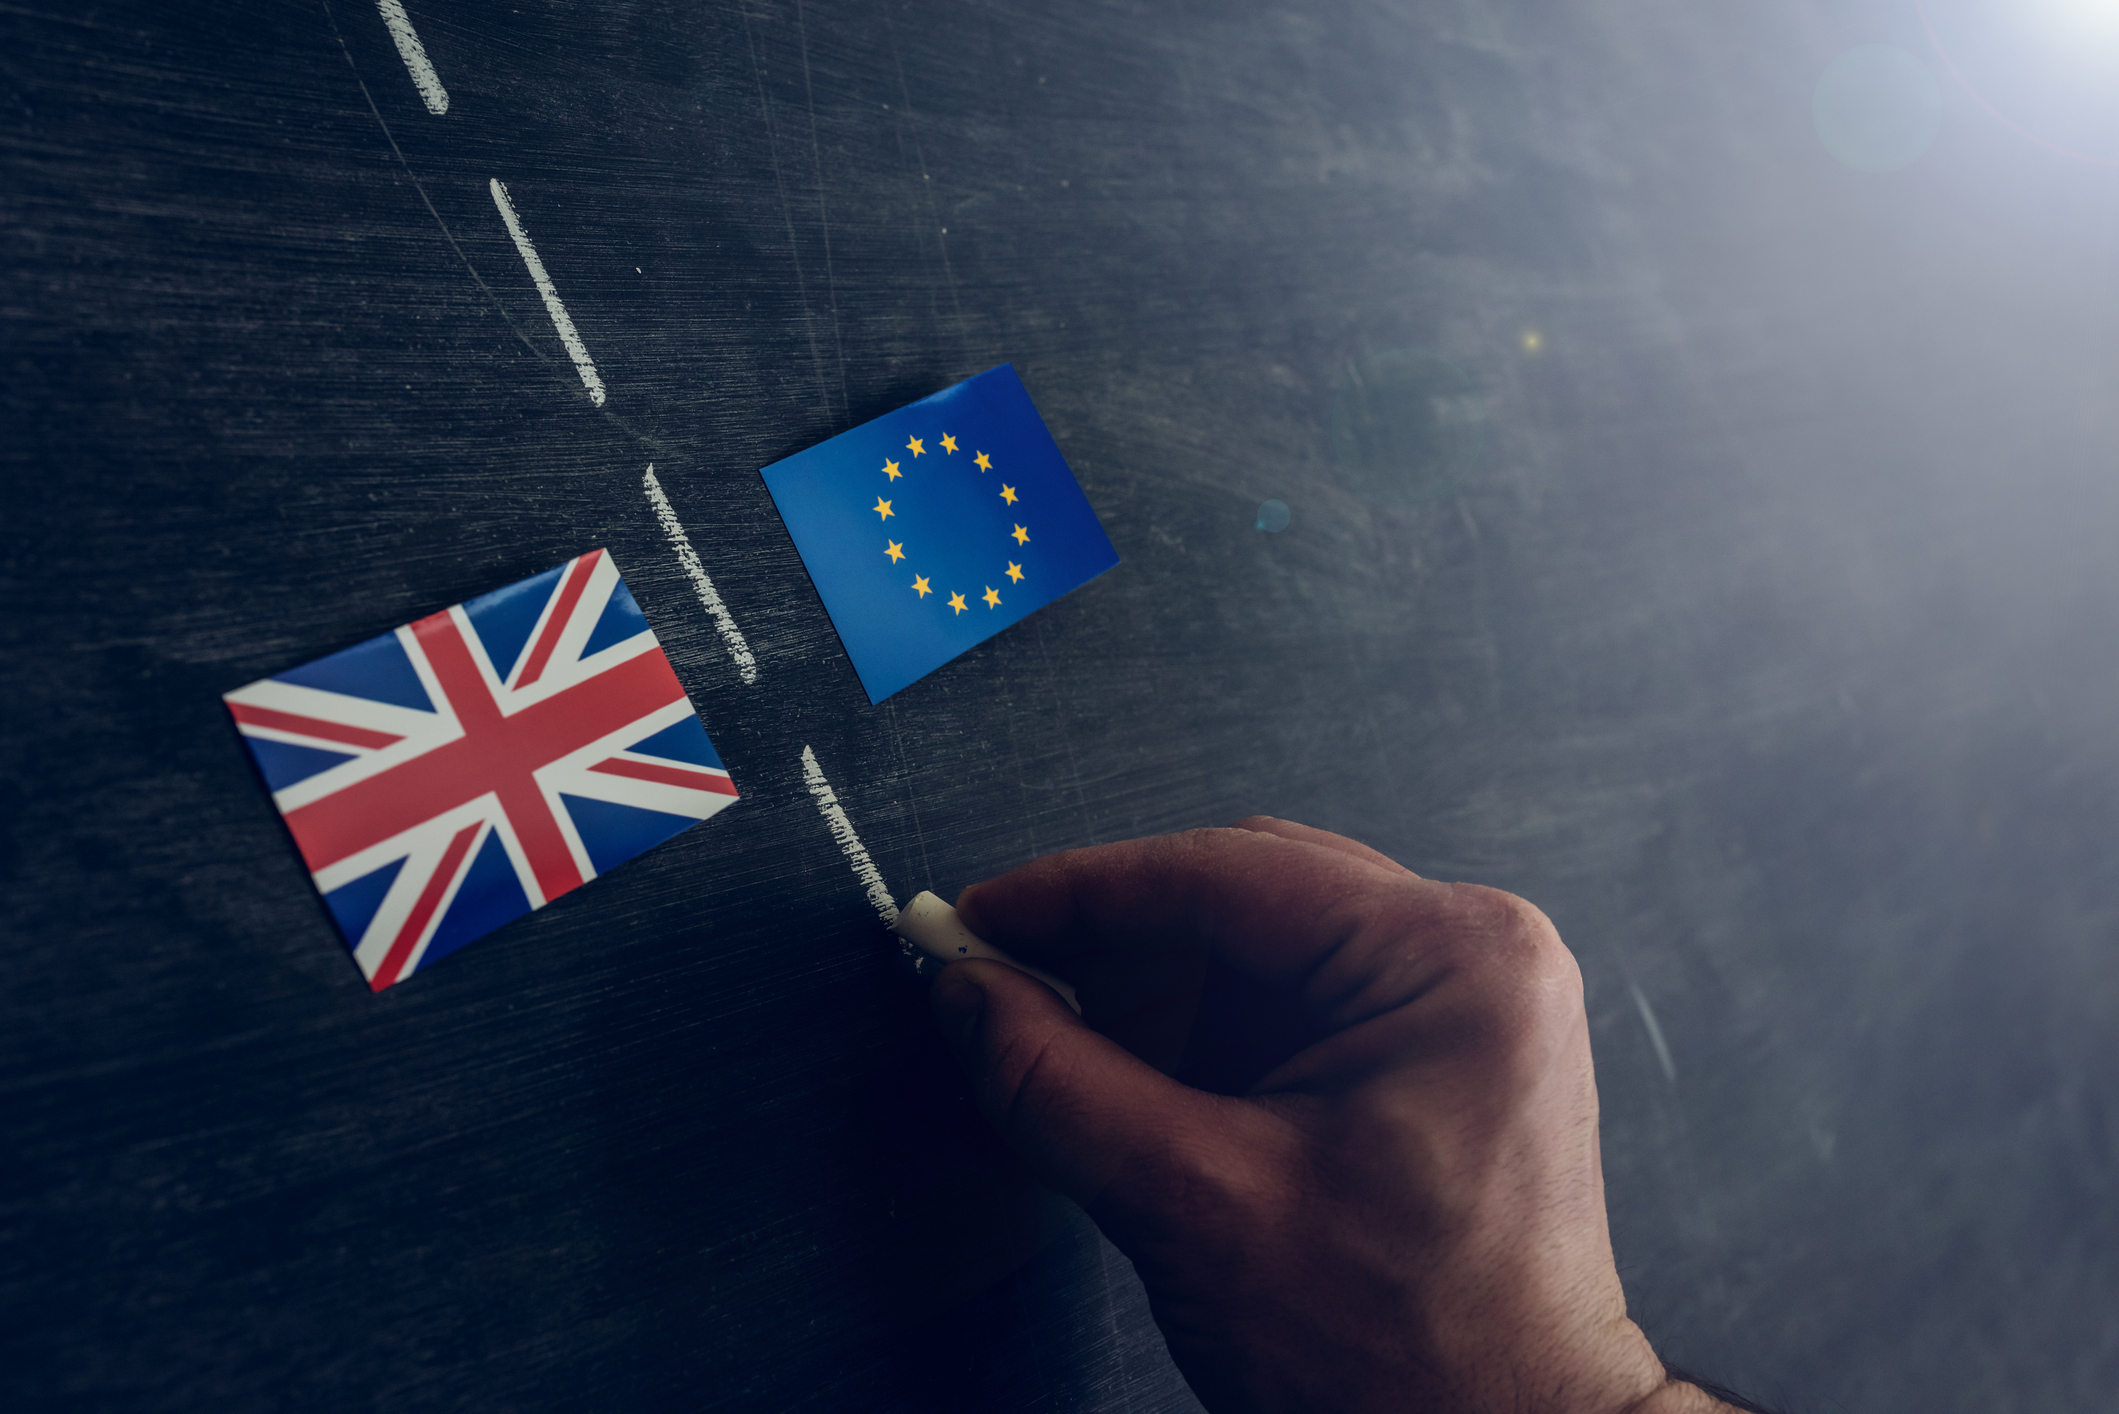 Brexit approved transition period - The UK Leaves the EU